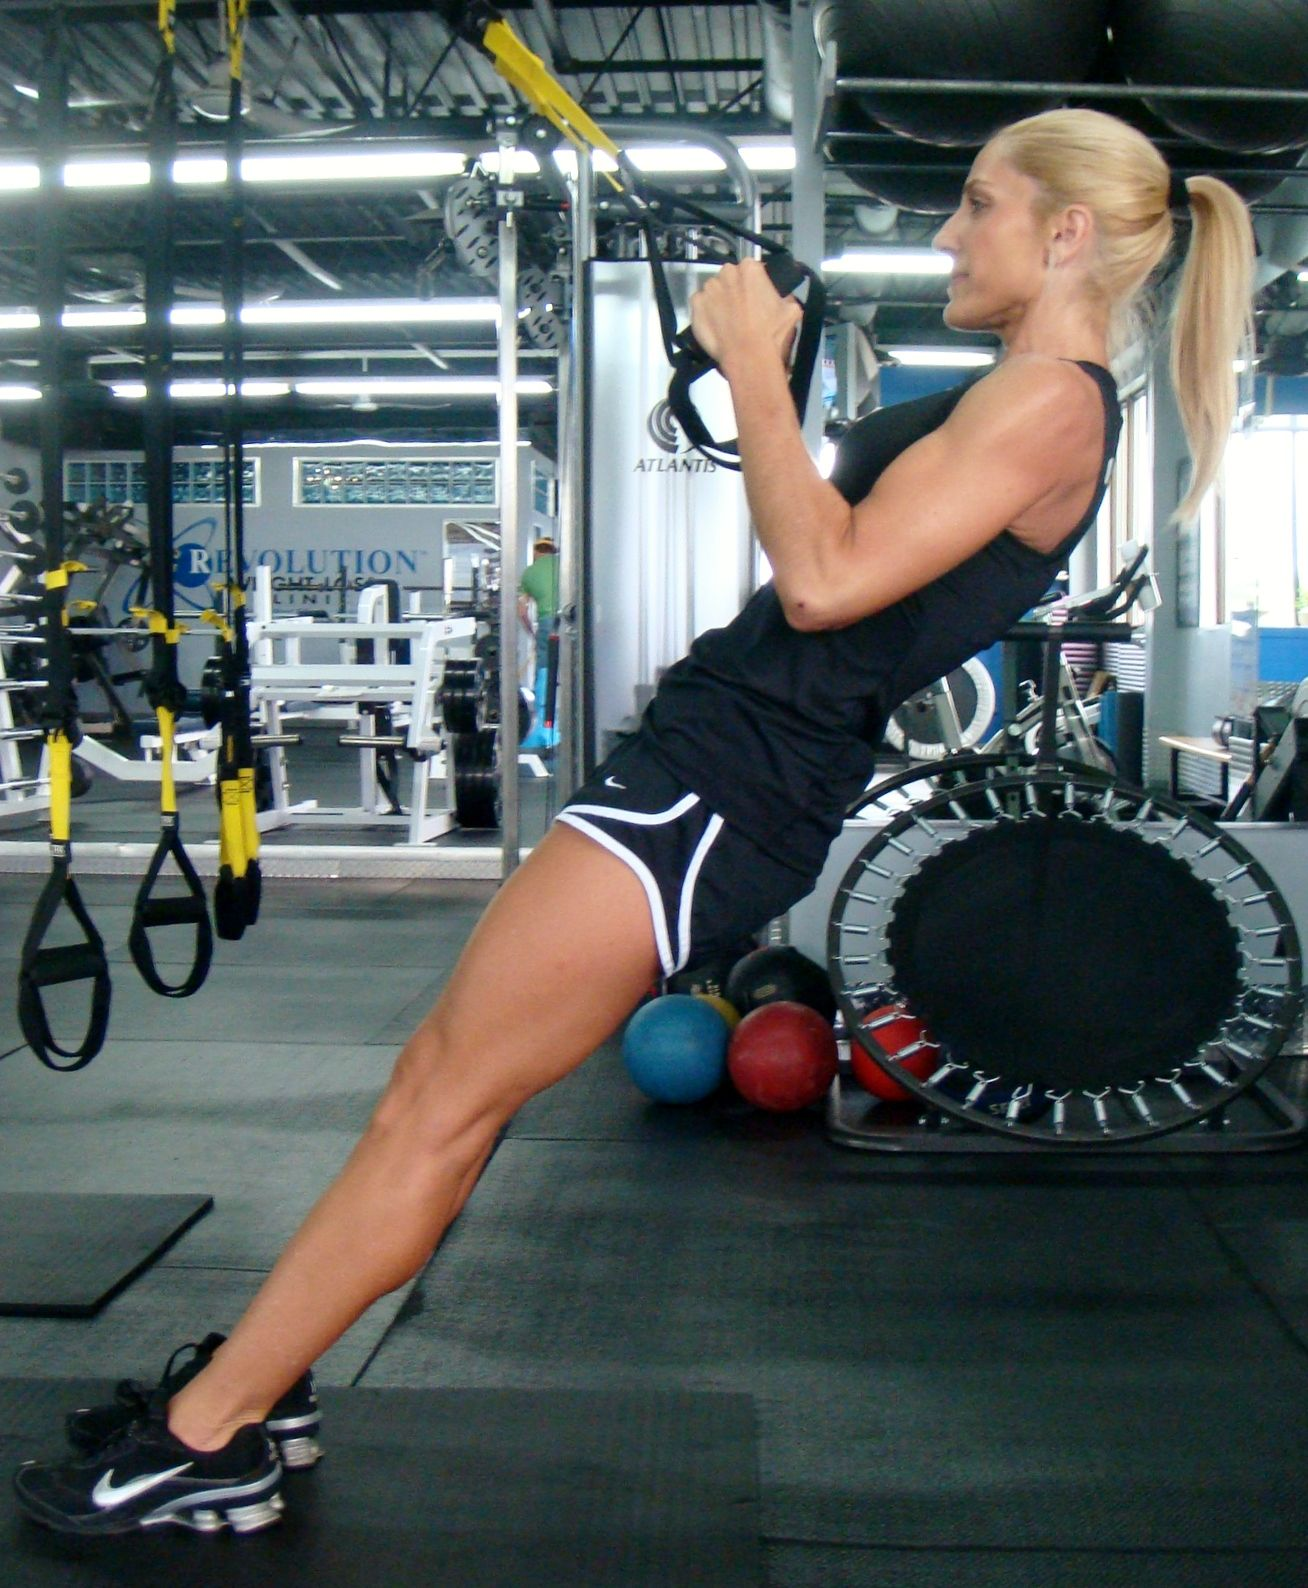 trx full body workout~metabolic blast jenn fit blog  total core circuit jenn fit blog